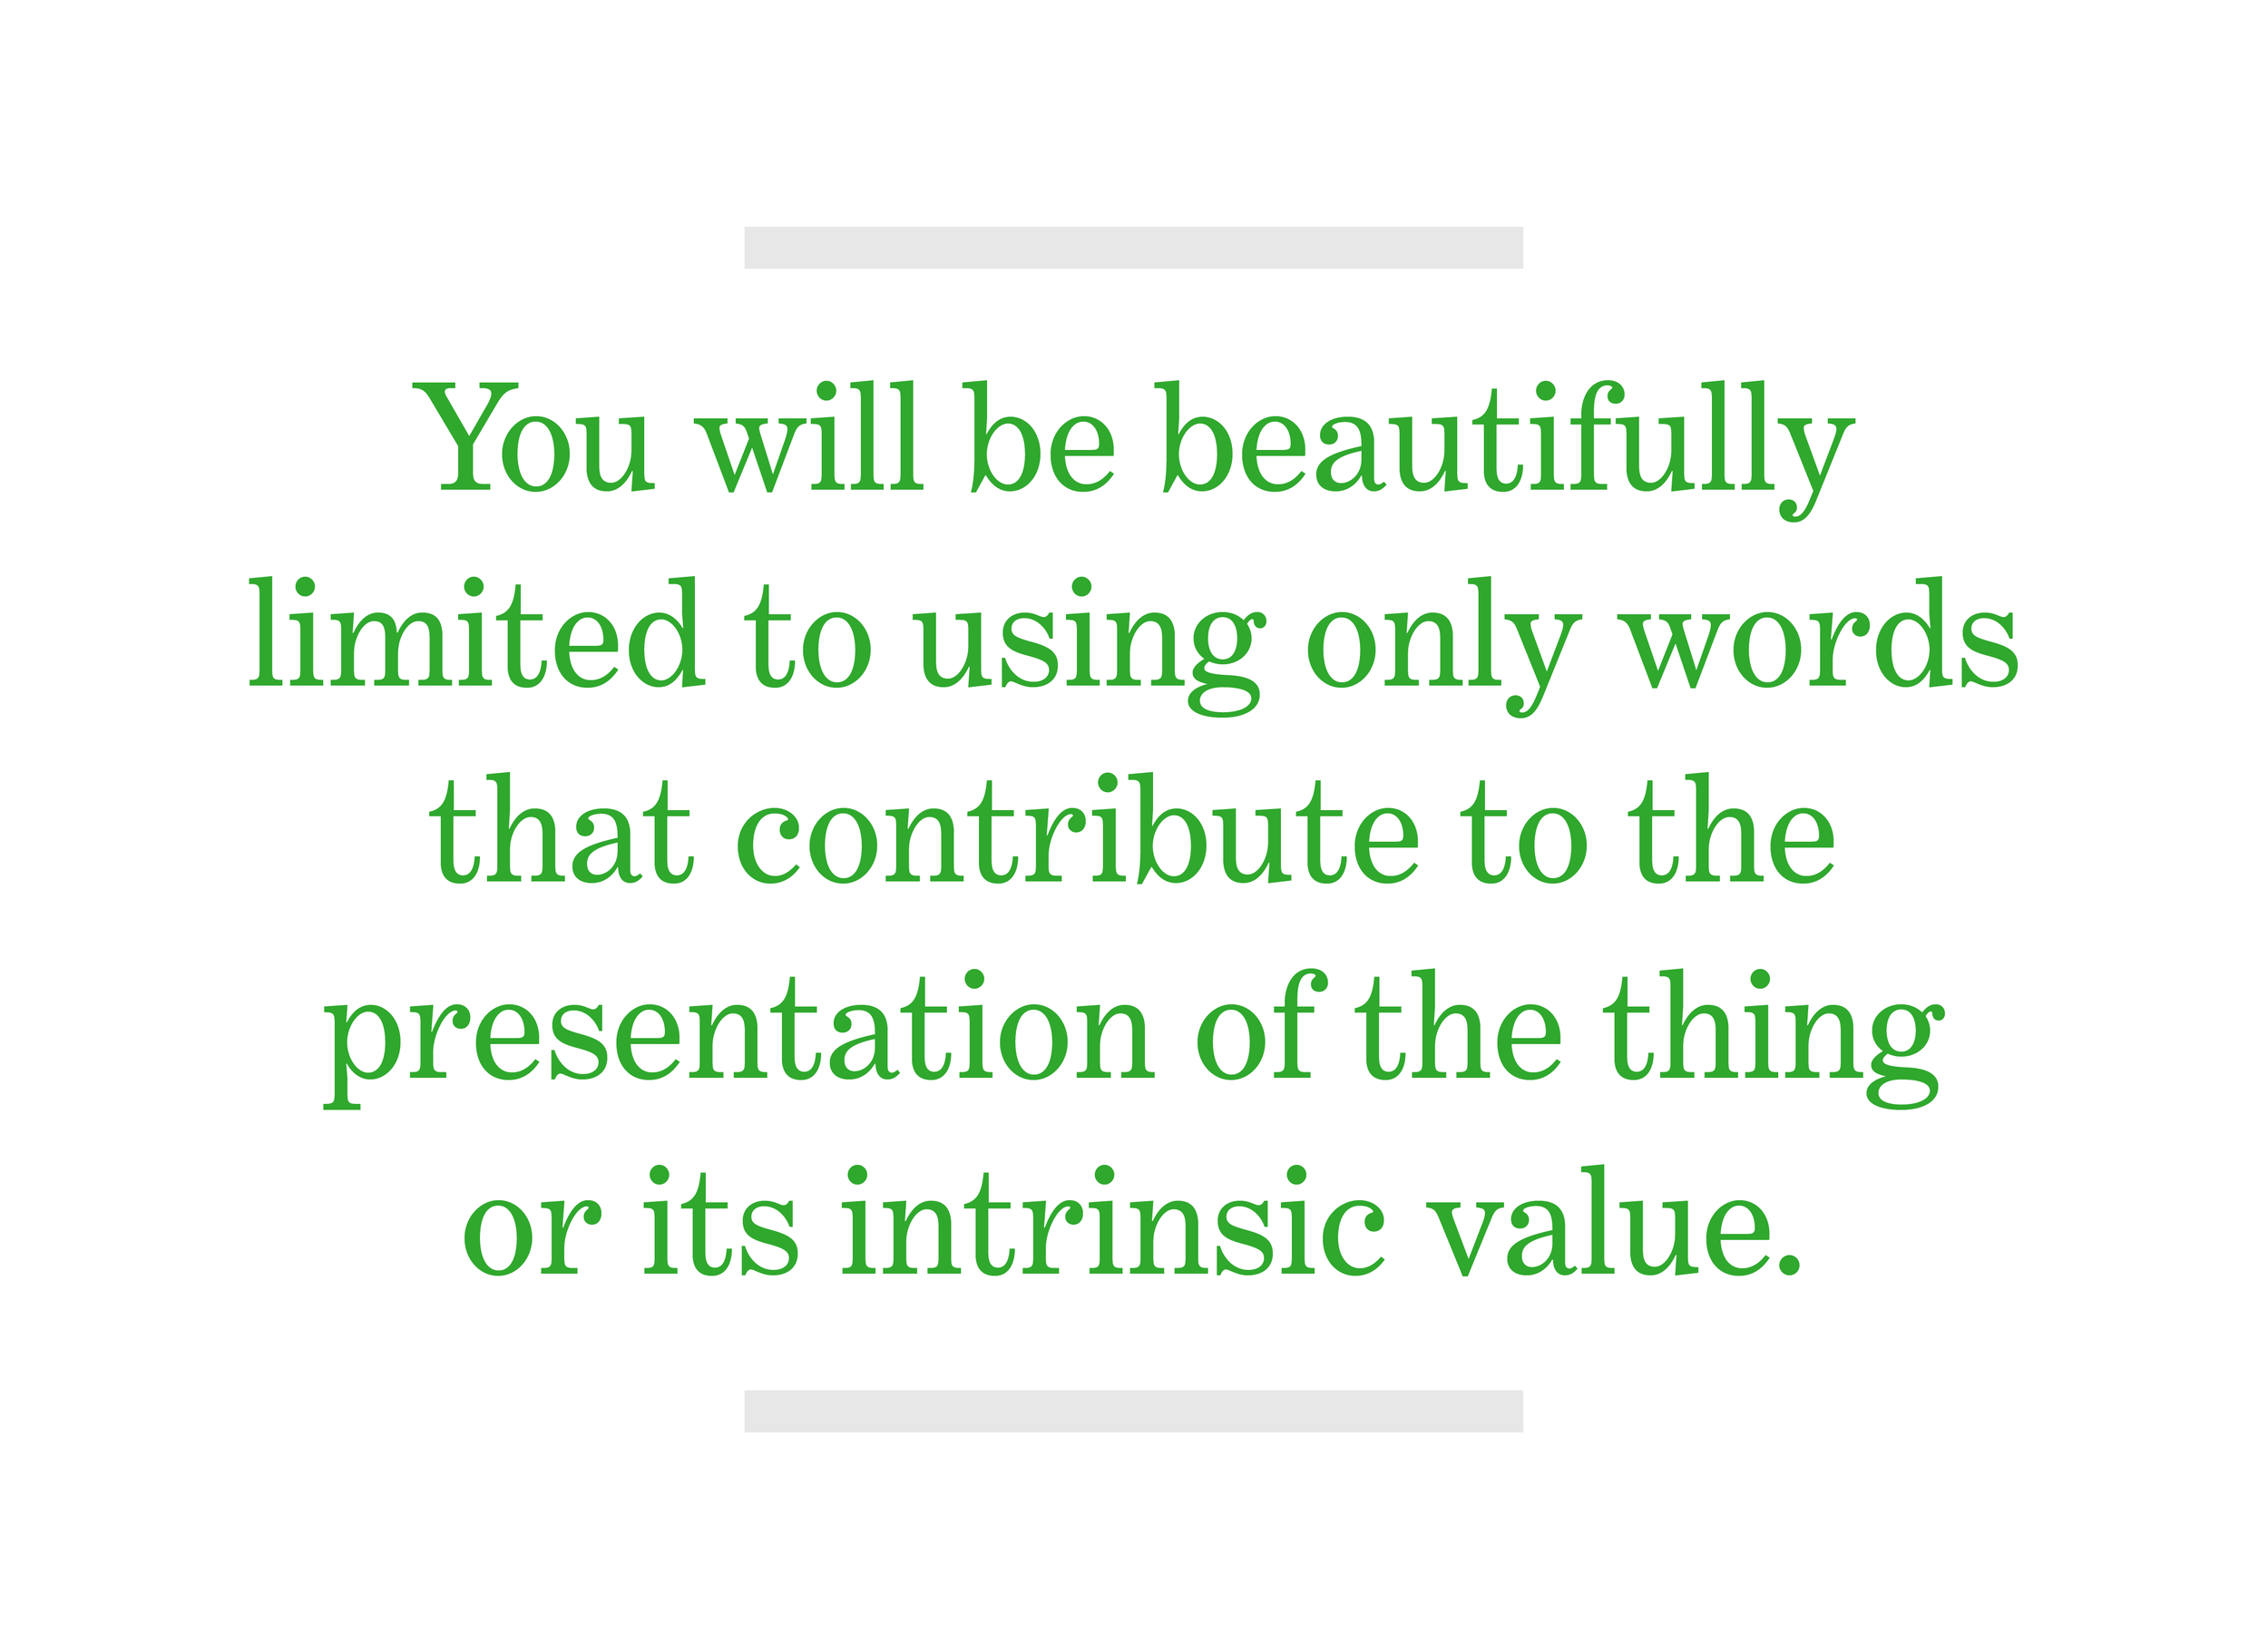 Blog_imagism_hero_quote_1.png